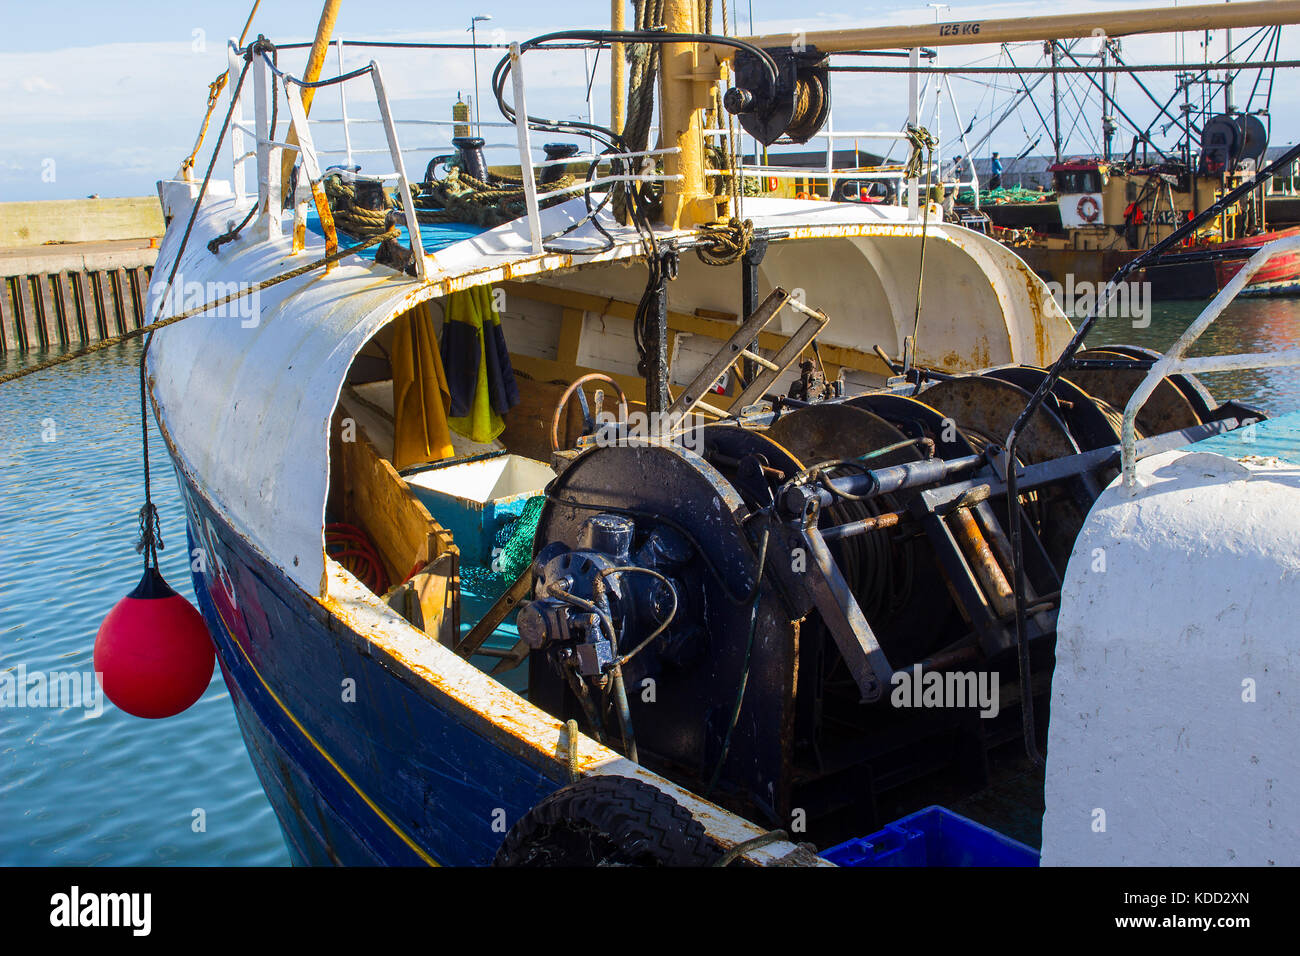 The covered bow and heavy duty winches and cables on the deck of a commercial fishing trawler - Stock Image